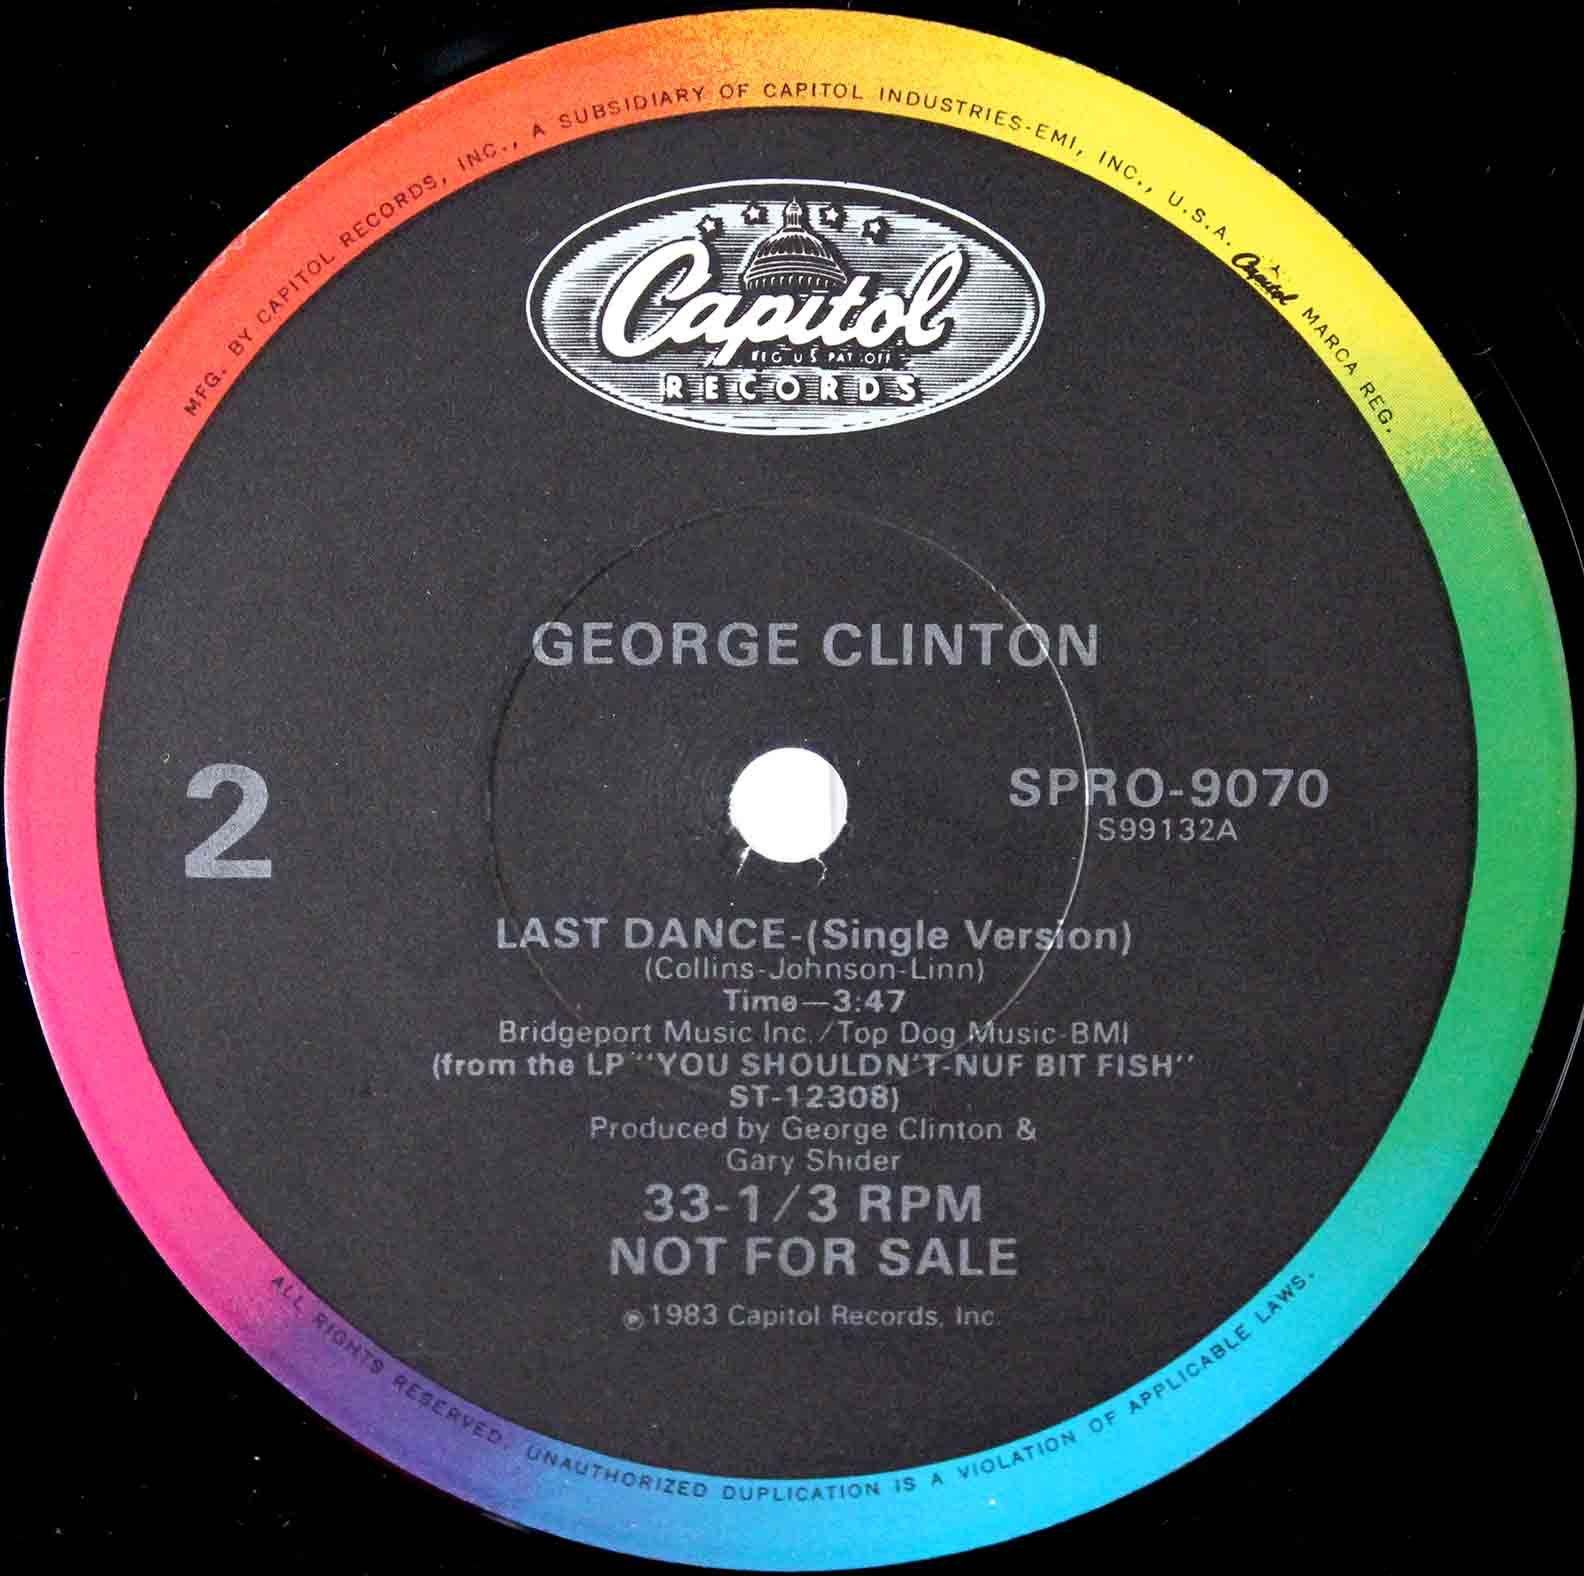 George Clinton - Last Dance 05